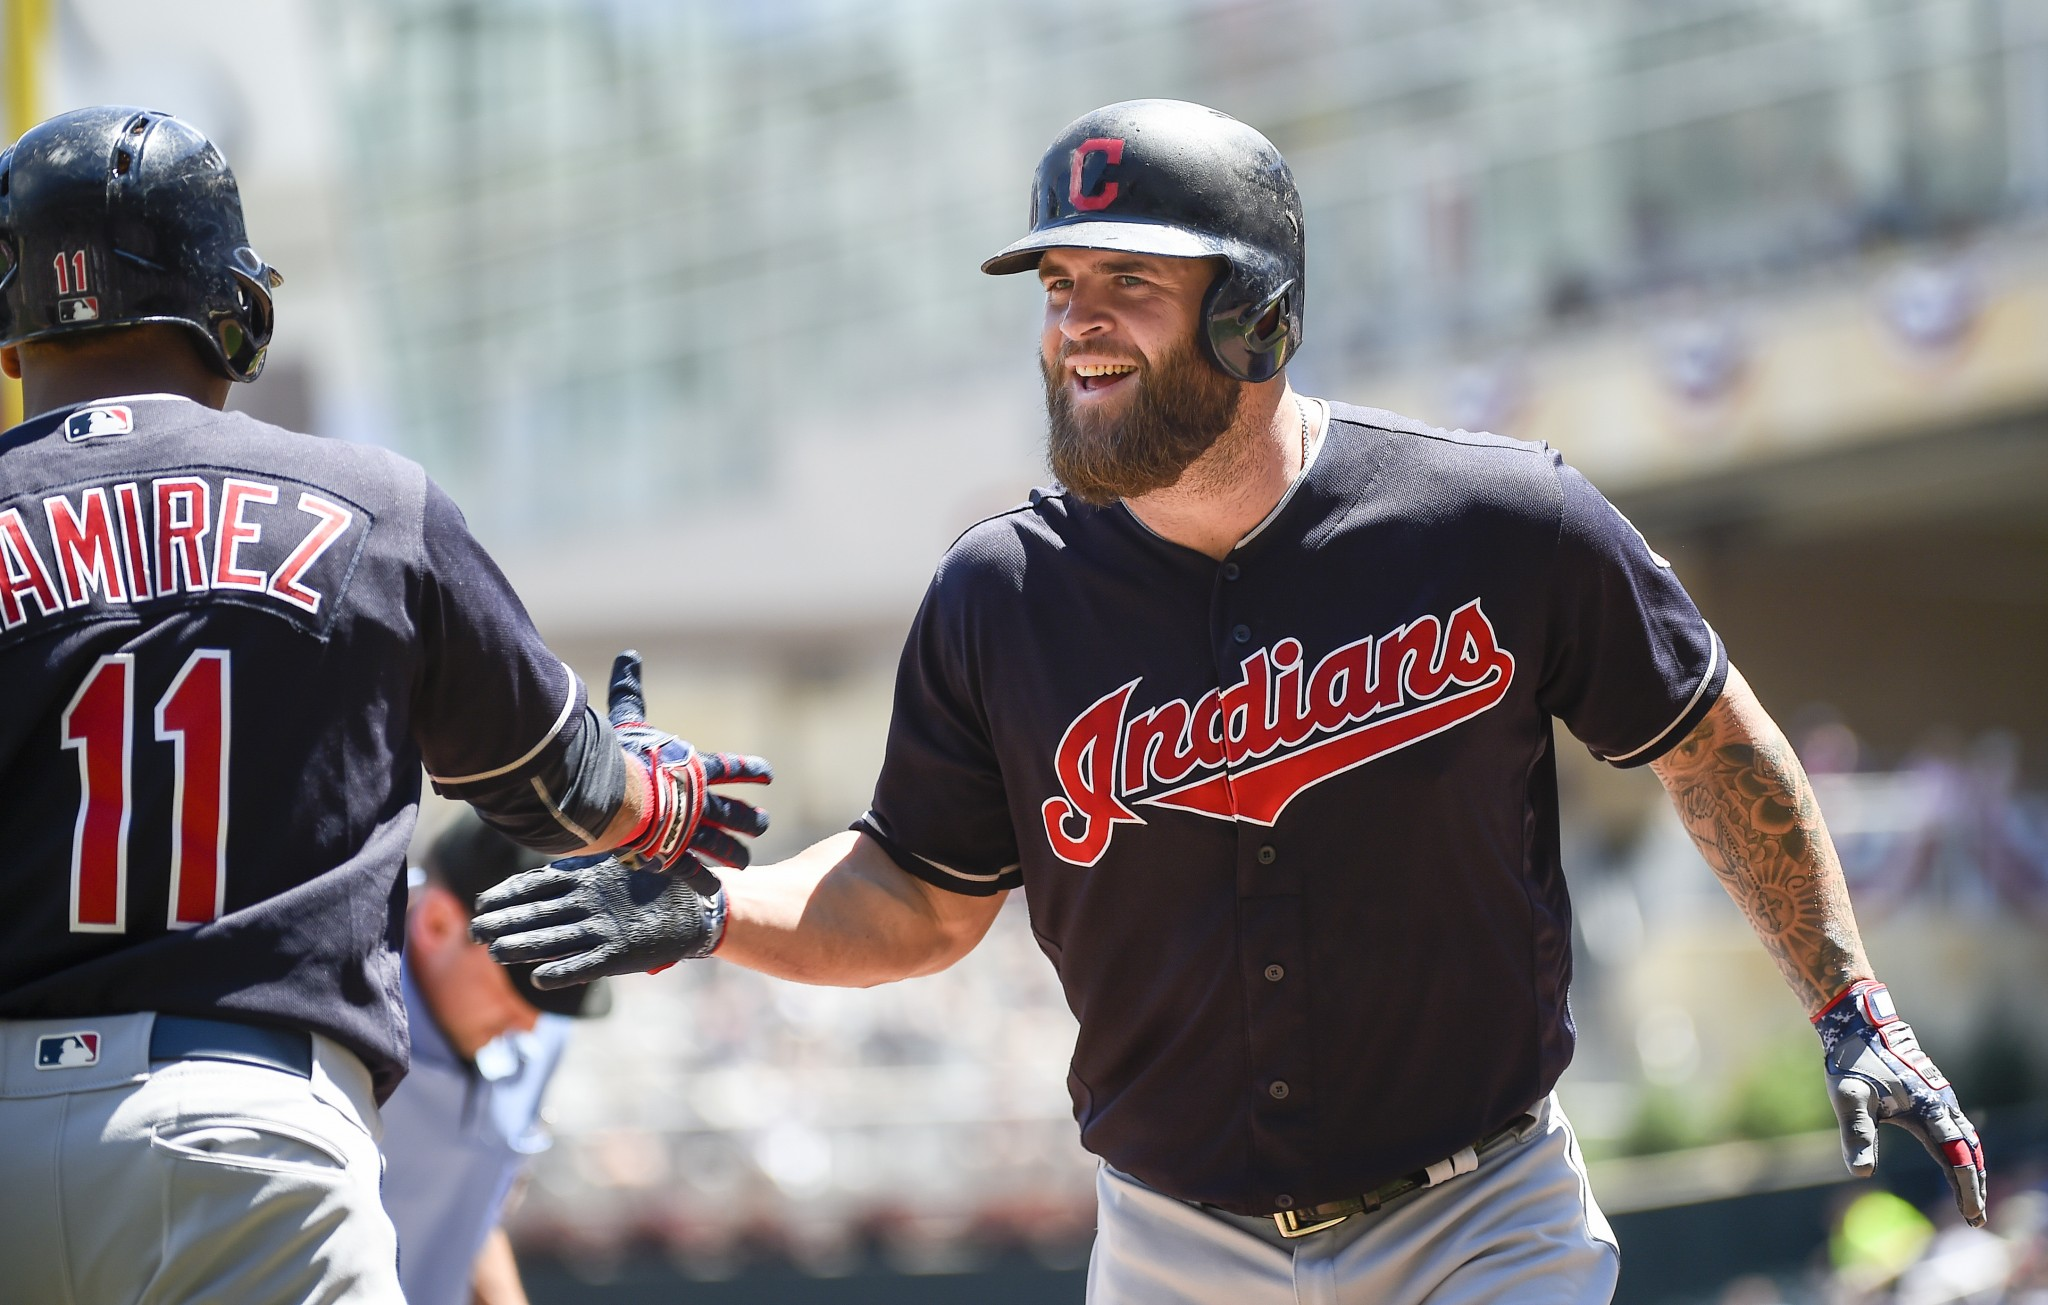 Watch live: Indians face Royals in MLB Free Game of the Day